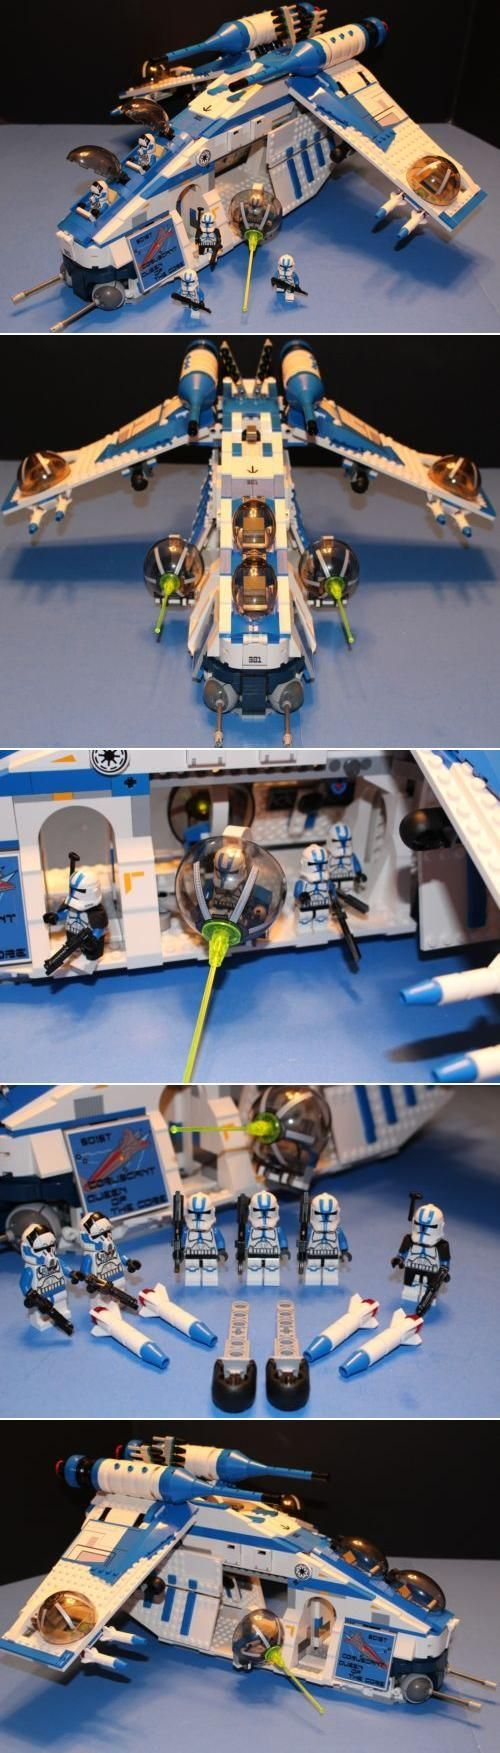 Relive the best of battles, and race to rescue Obi-Wan, Anakin and Padme in this amazing LEGO Star Wars Republic Gunship!